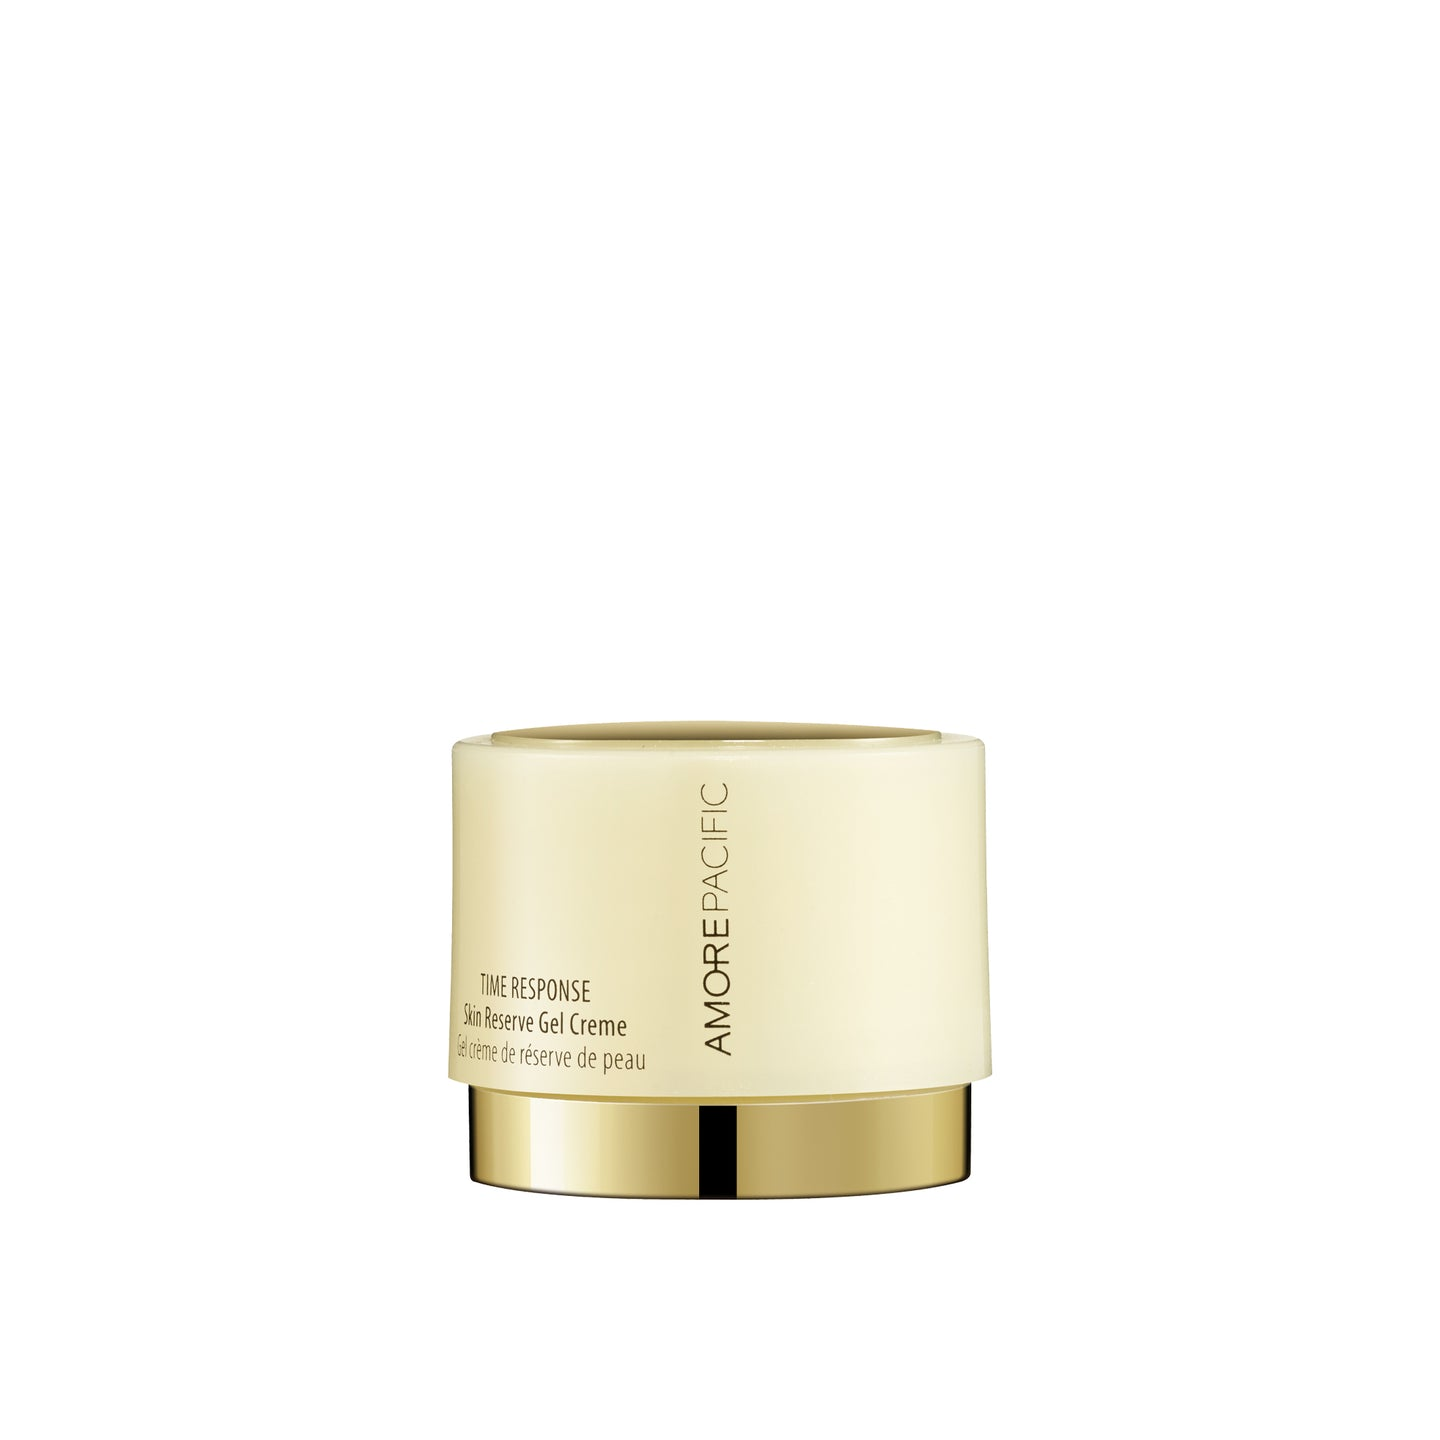 TIME RESPONSE Skin Reserve Gel Creme Deluxe (8ml)